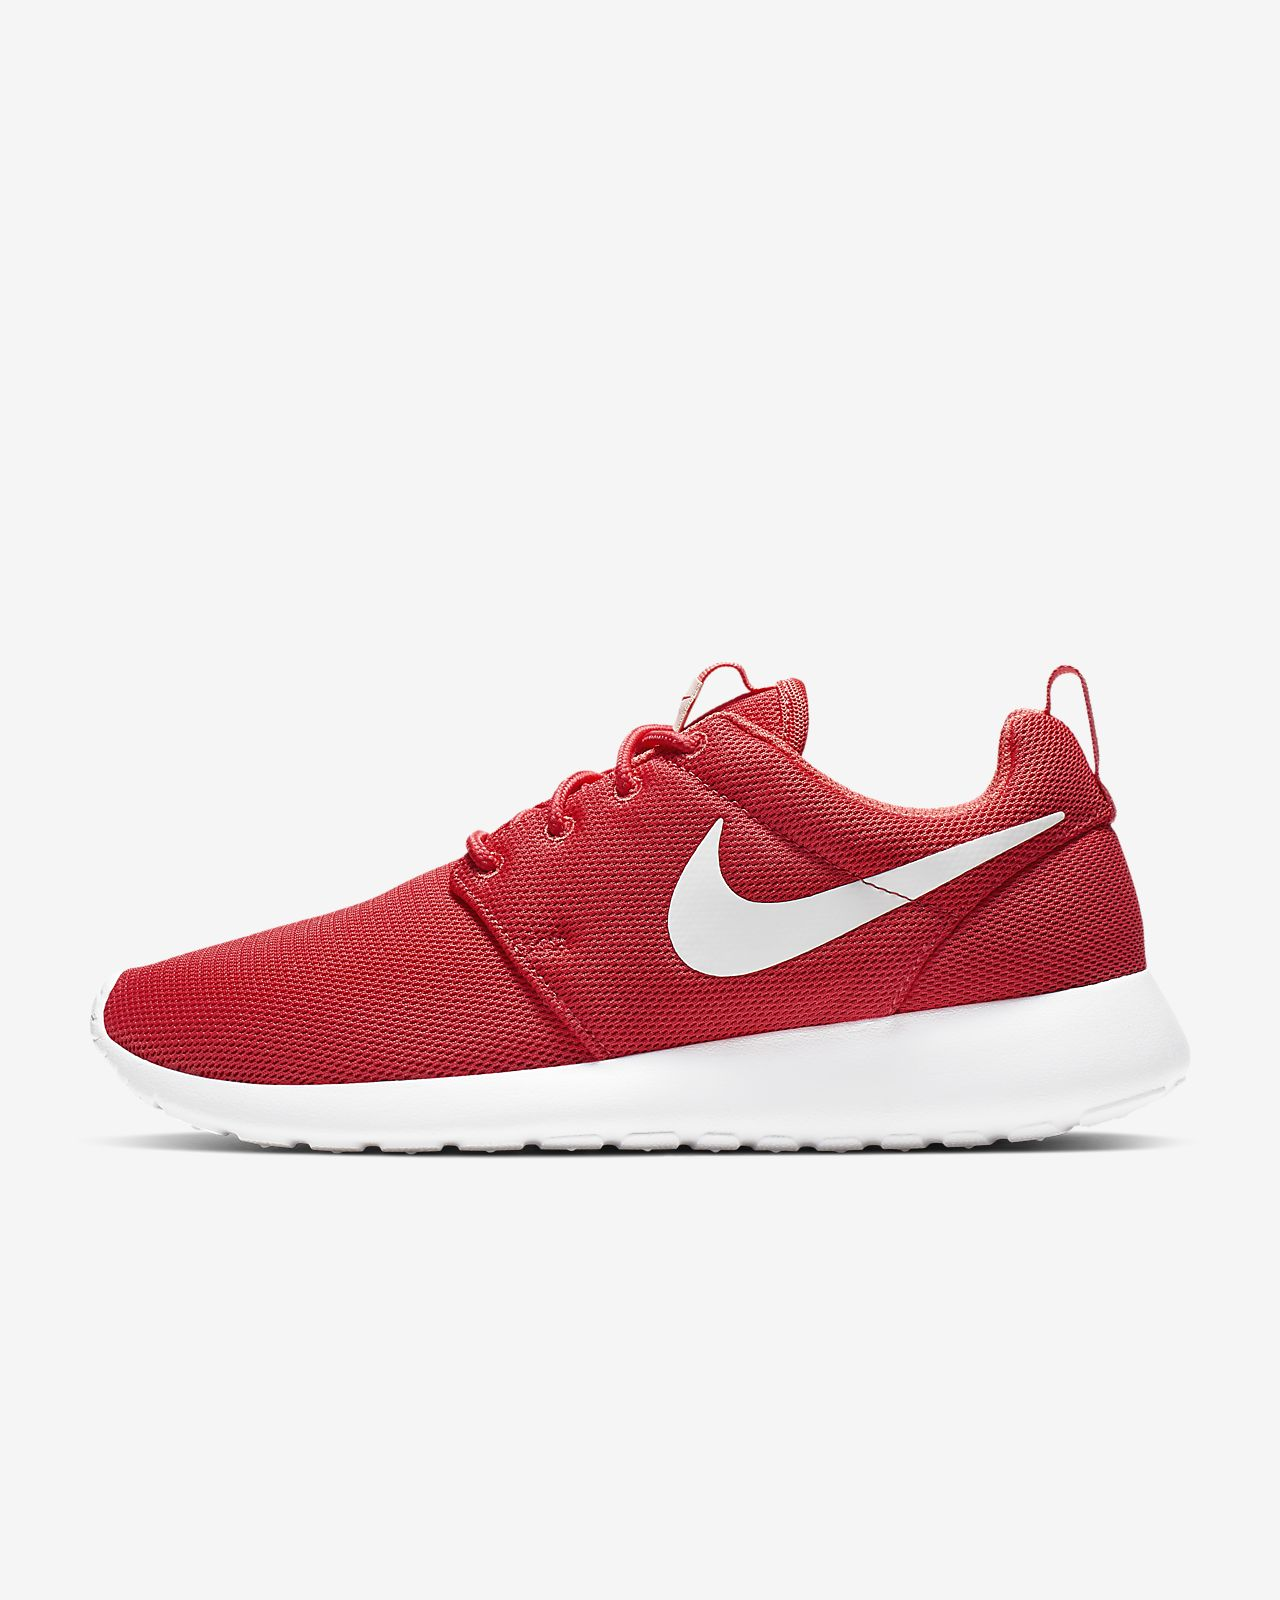 premium selection c40b7 e513c ... Nike Roshe One Women s Shoe